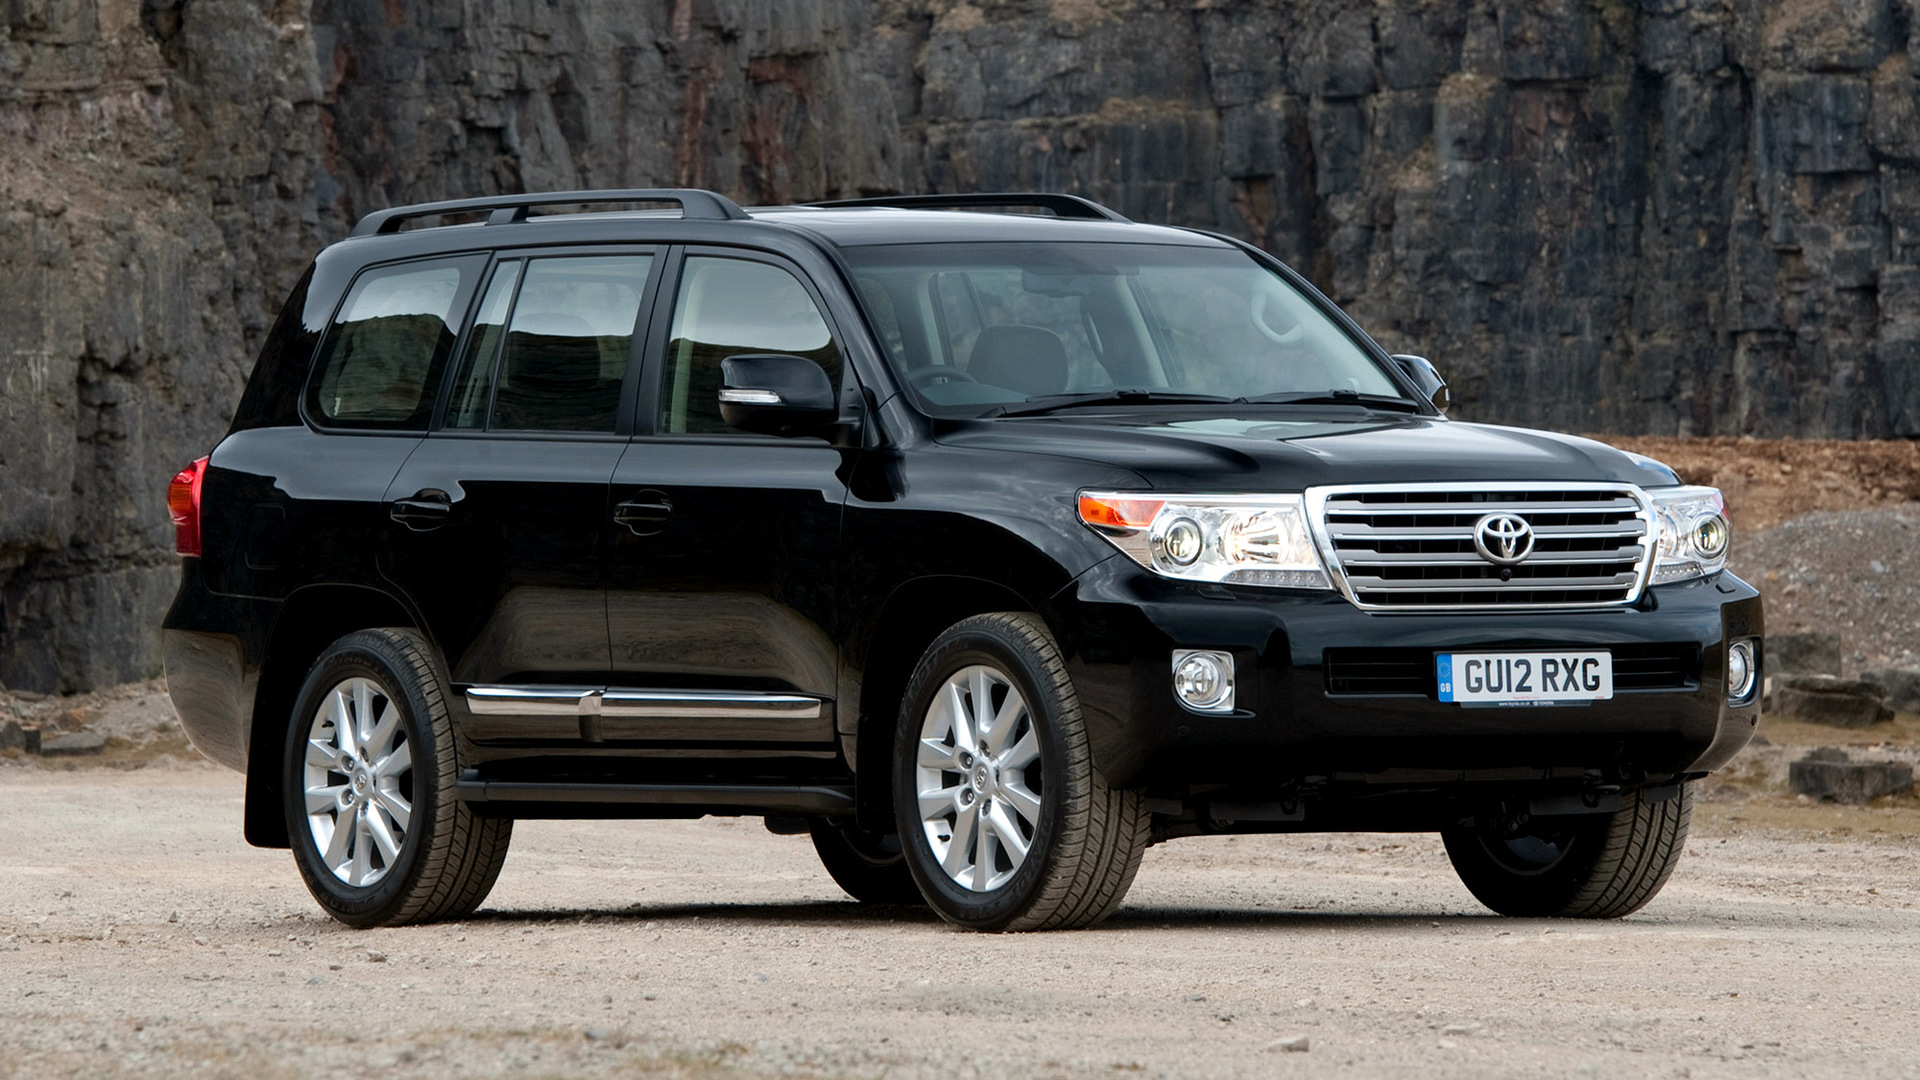 Toyota Land Cruiser V8 (2012) Wallpapers and HD Images ...